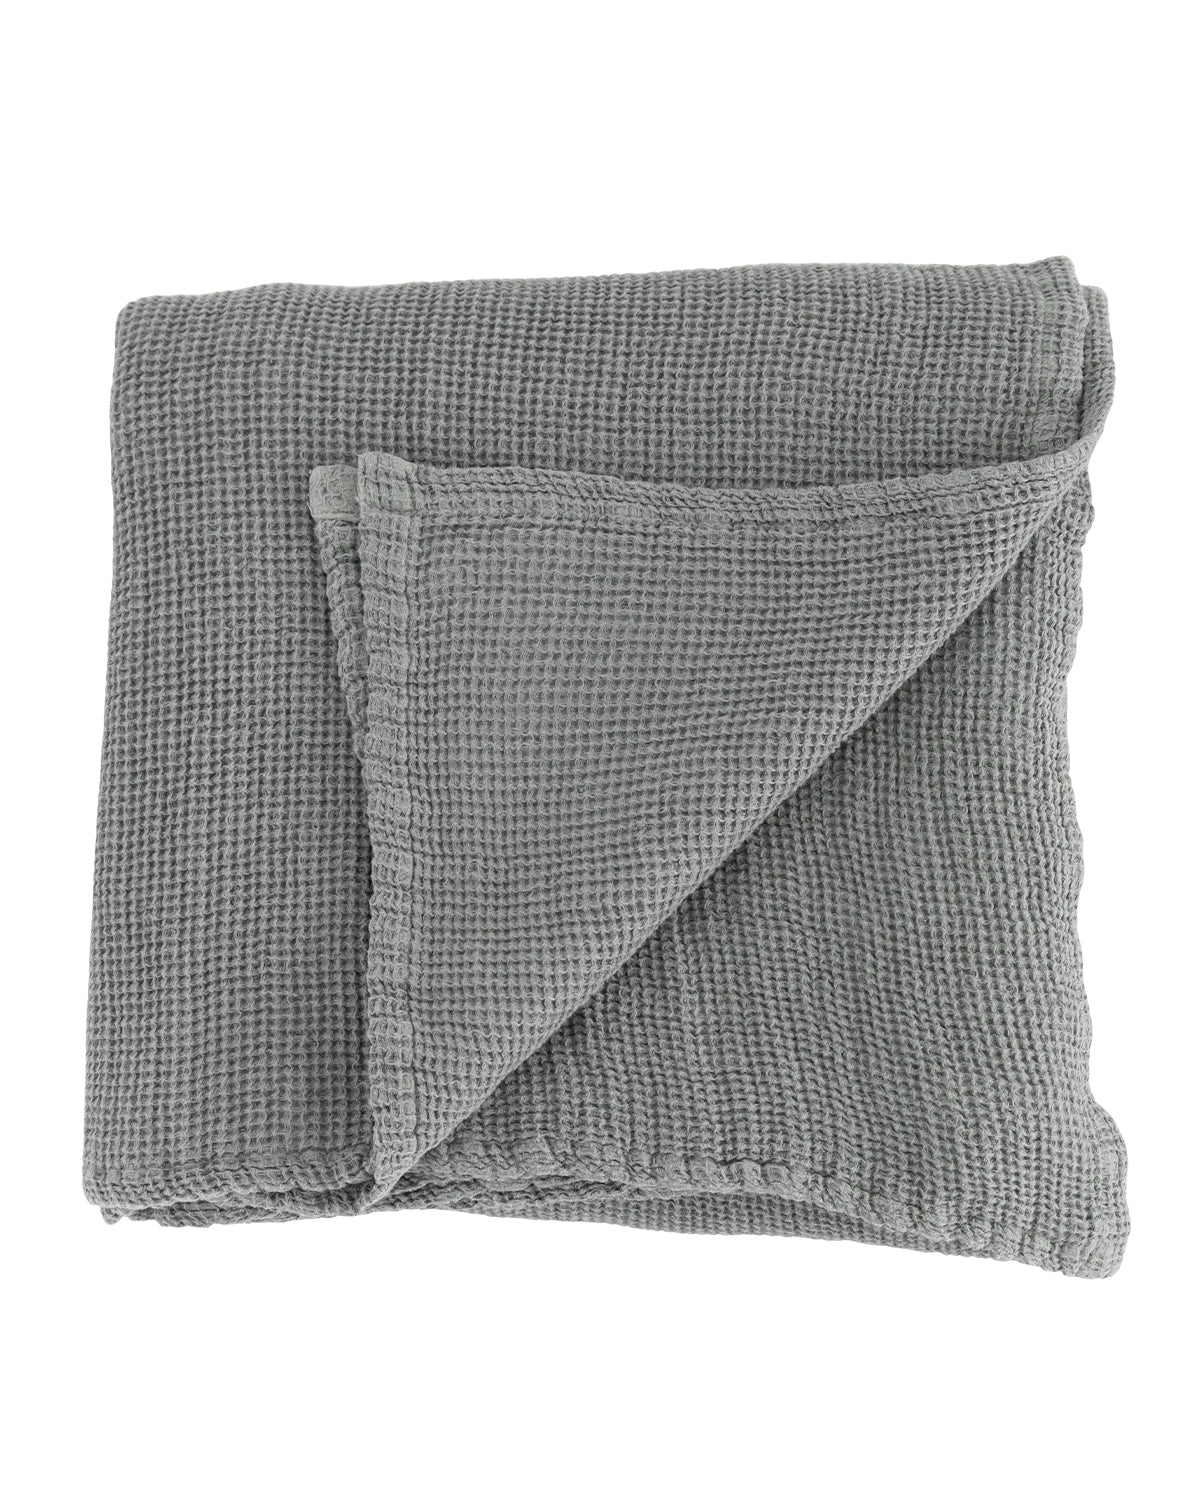 Waverly Linen Blanket